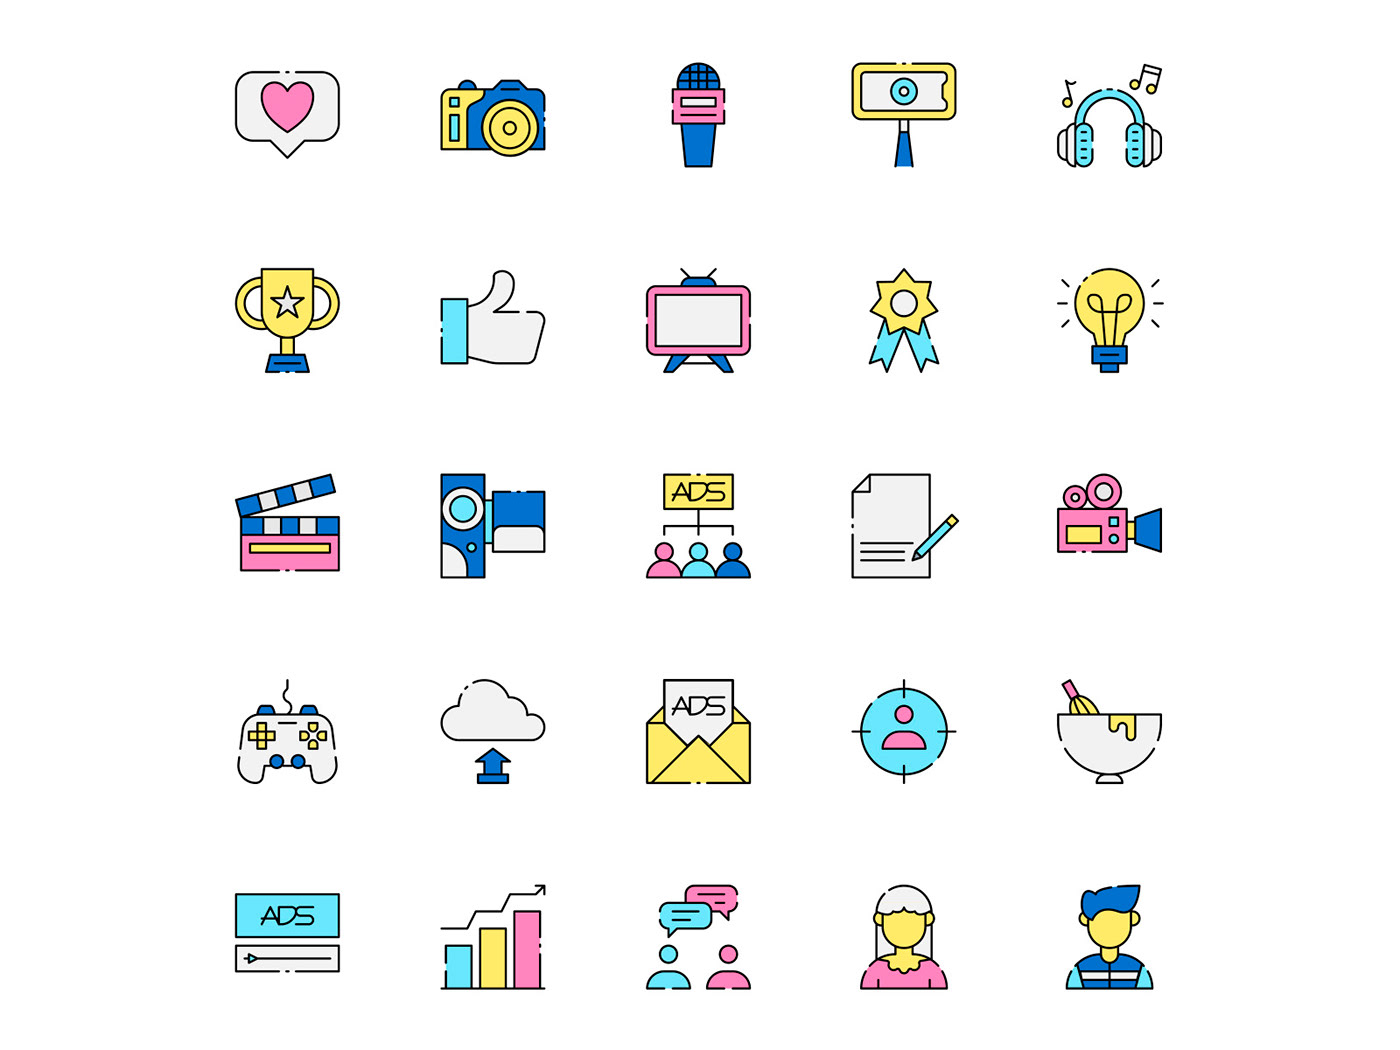 freebie icon design  icons download icons pack icons set INFLUENCER influencer icon influencer vector vector design vector icon